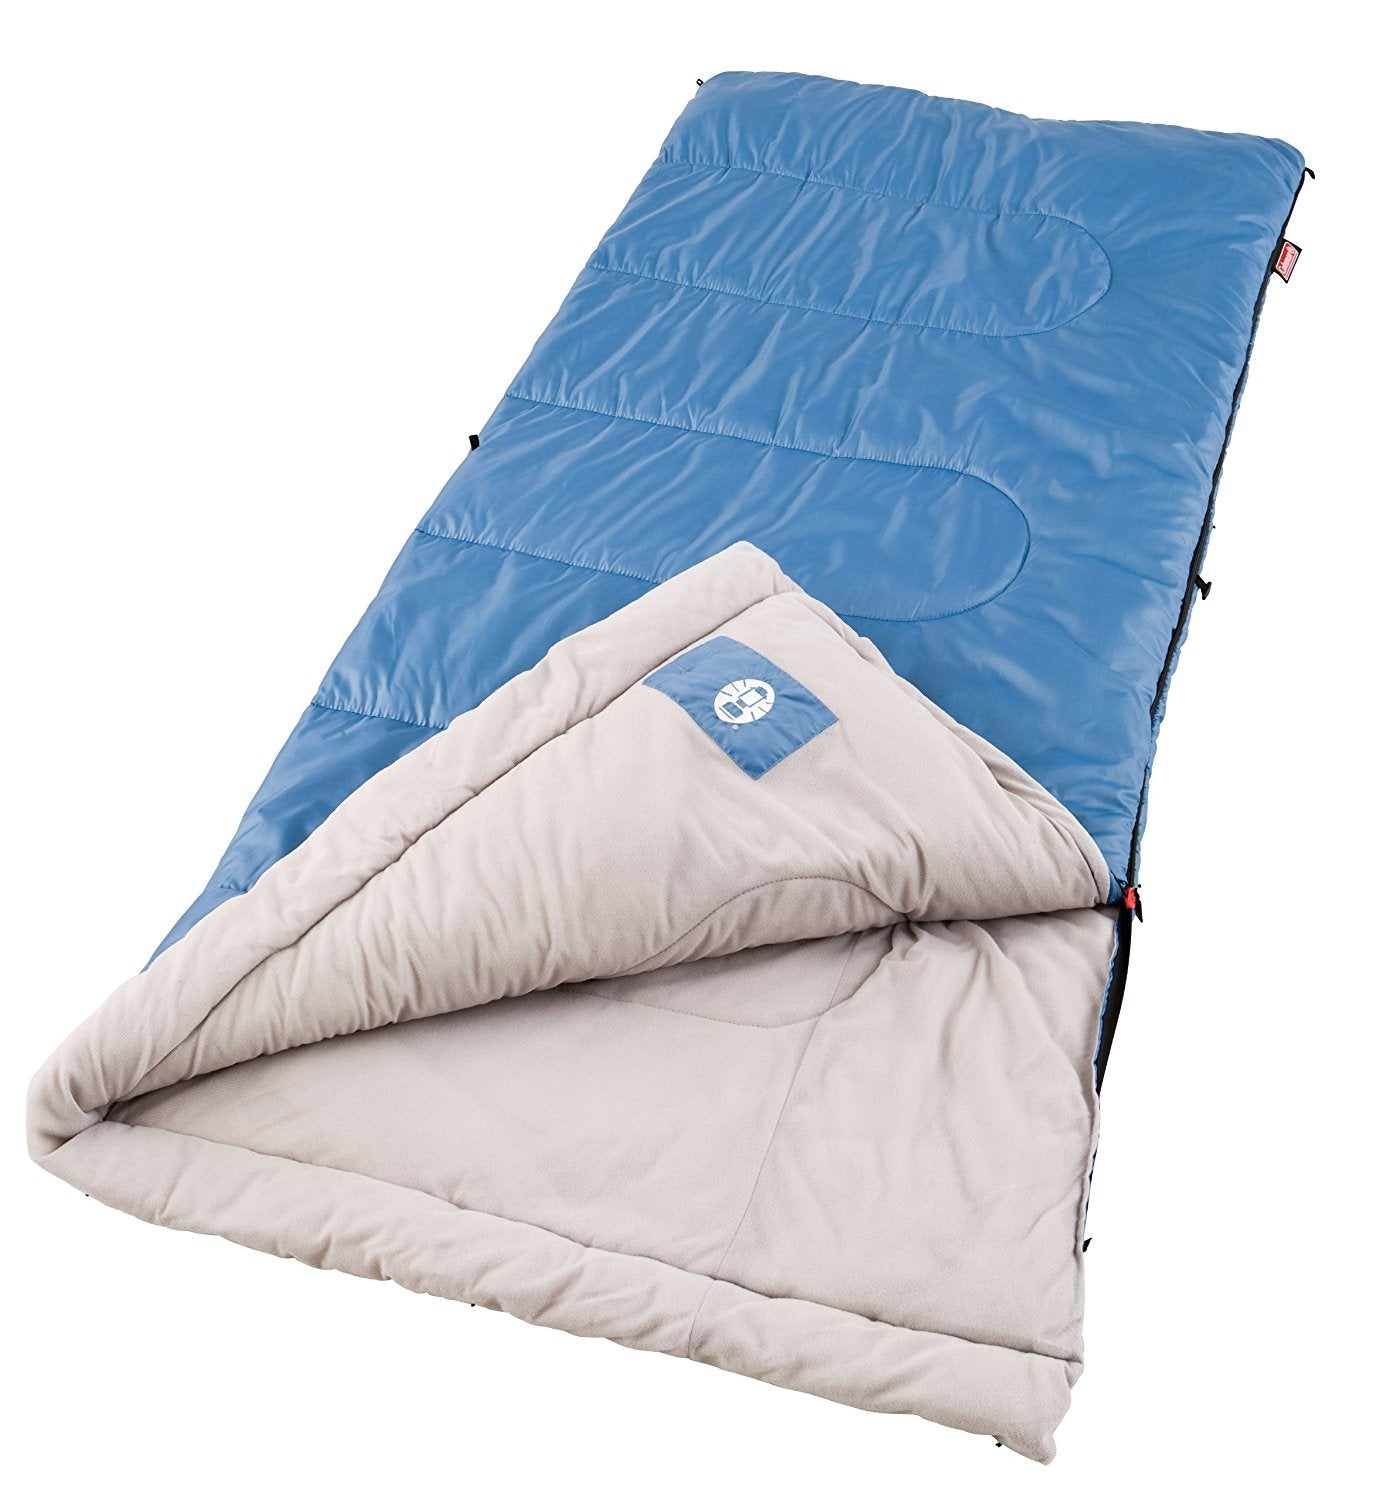 Renting- Sleeping Bag